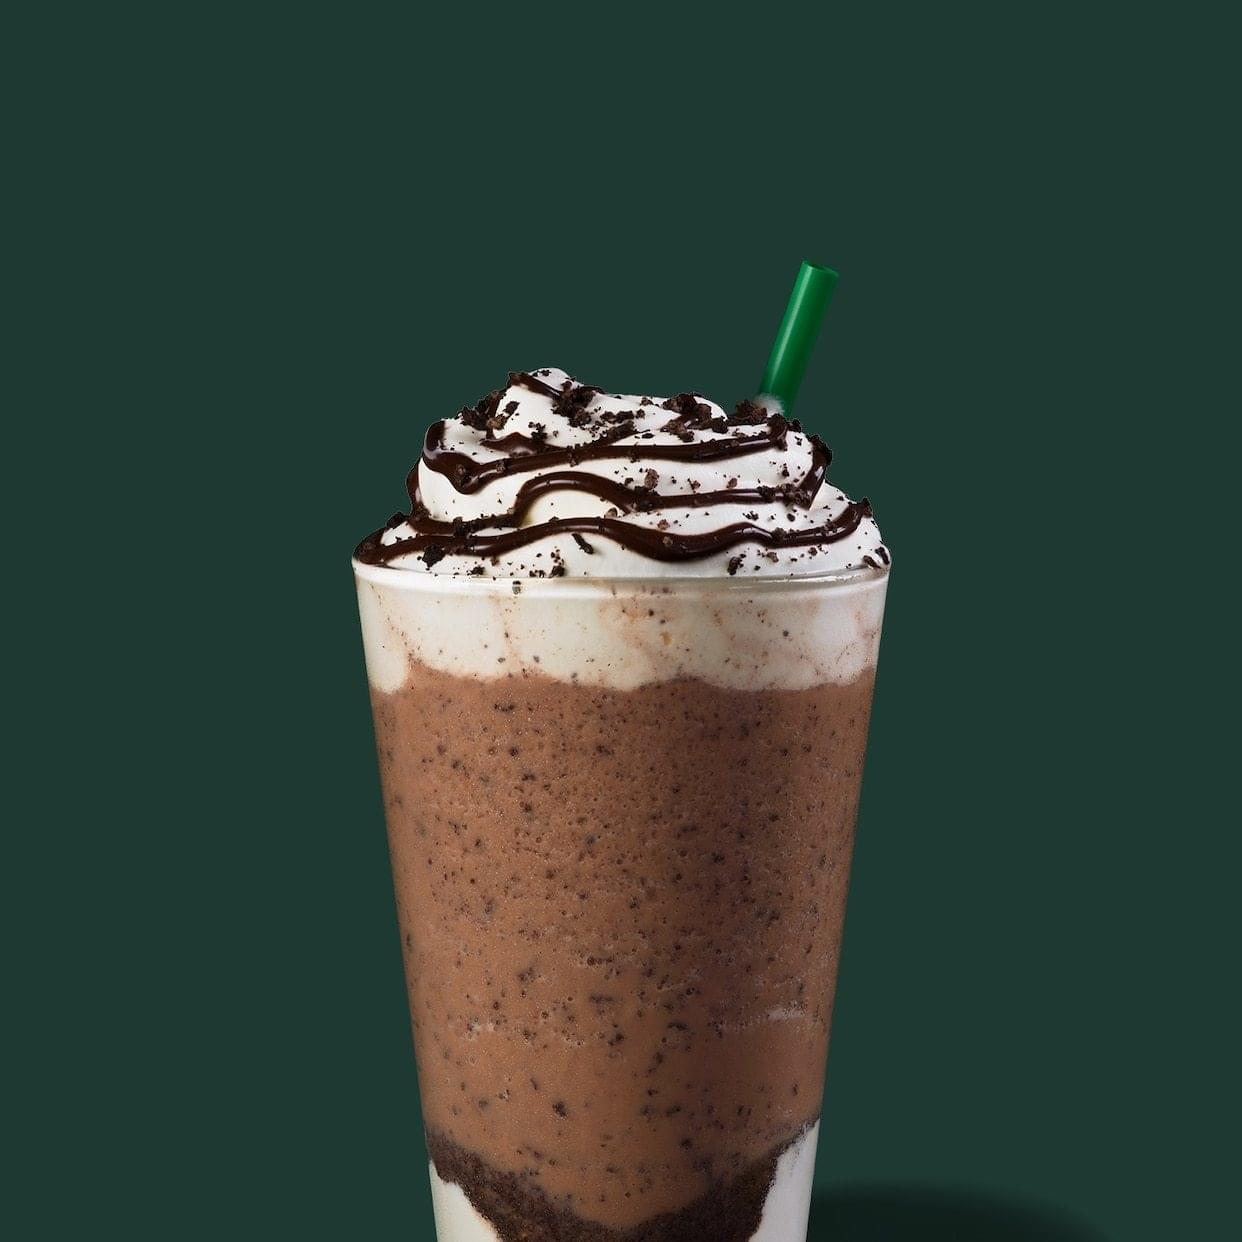 Starbucks Chocolate Cookie Crumble Creme Frappuccino Nutrition Facts